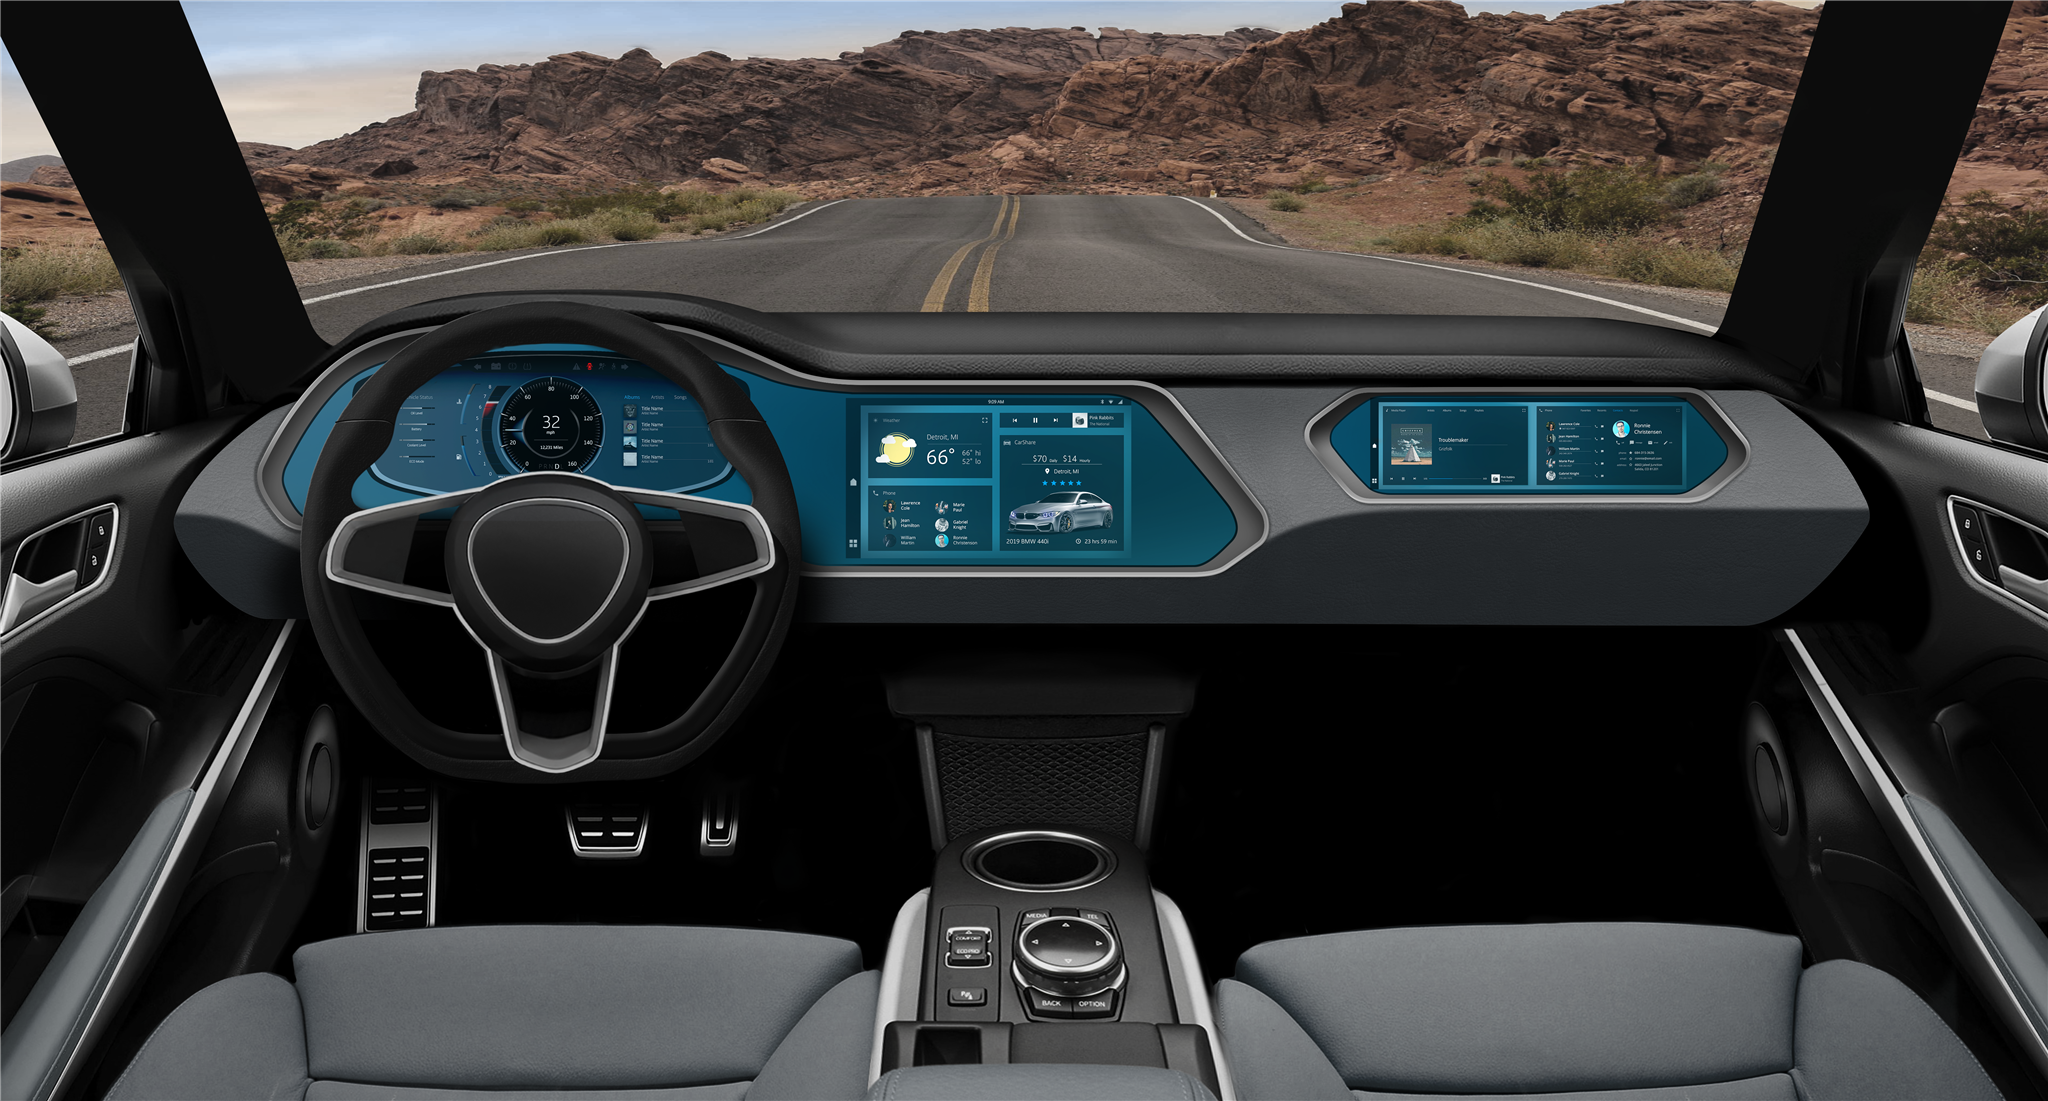 Vehicle user experience, UX, ATLAS, UX ATLAS, NNG, user experience, UX, CAR, Interior, infotainment, cluster, haptic, audible, touch, visual, Voice Assistants, User Experience, UX, ADAS, ADASIS, V2X, c-V2X, Connected Vehicles, Autonomous, Infotainment, Predictions, 2019, Location Based Services, Automotive, Industry, Trends, Electric Vehicles, HMI, Navigation, UI, Tamas Kerecsen, CTO, NNG